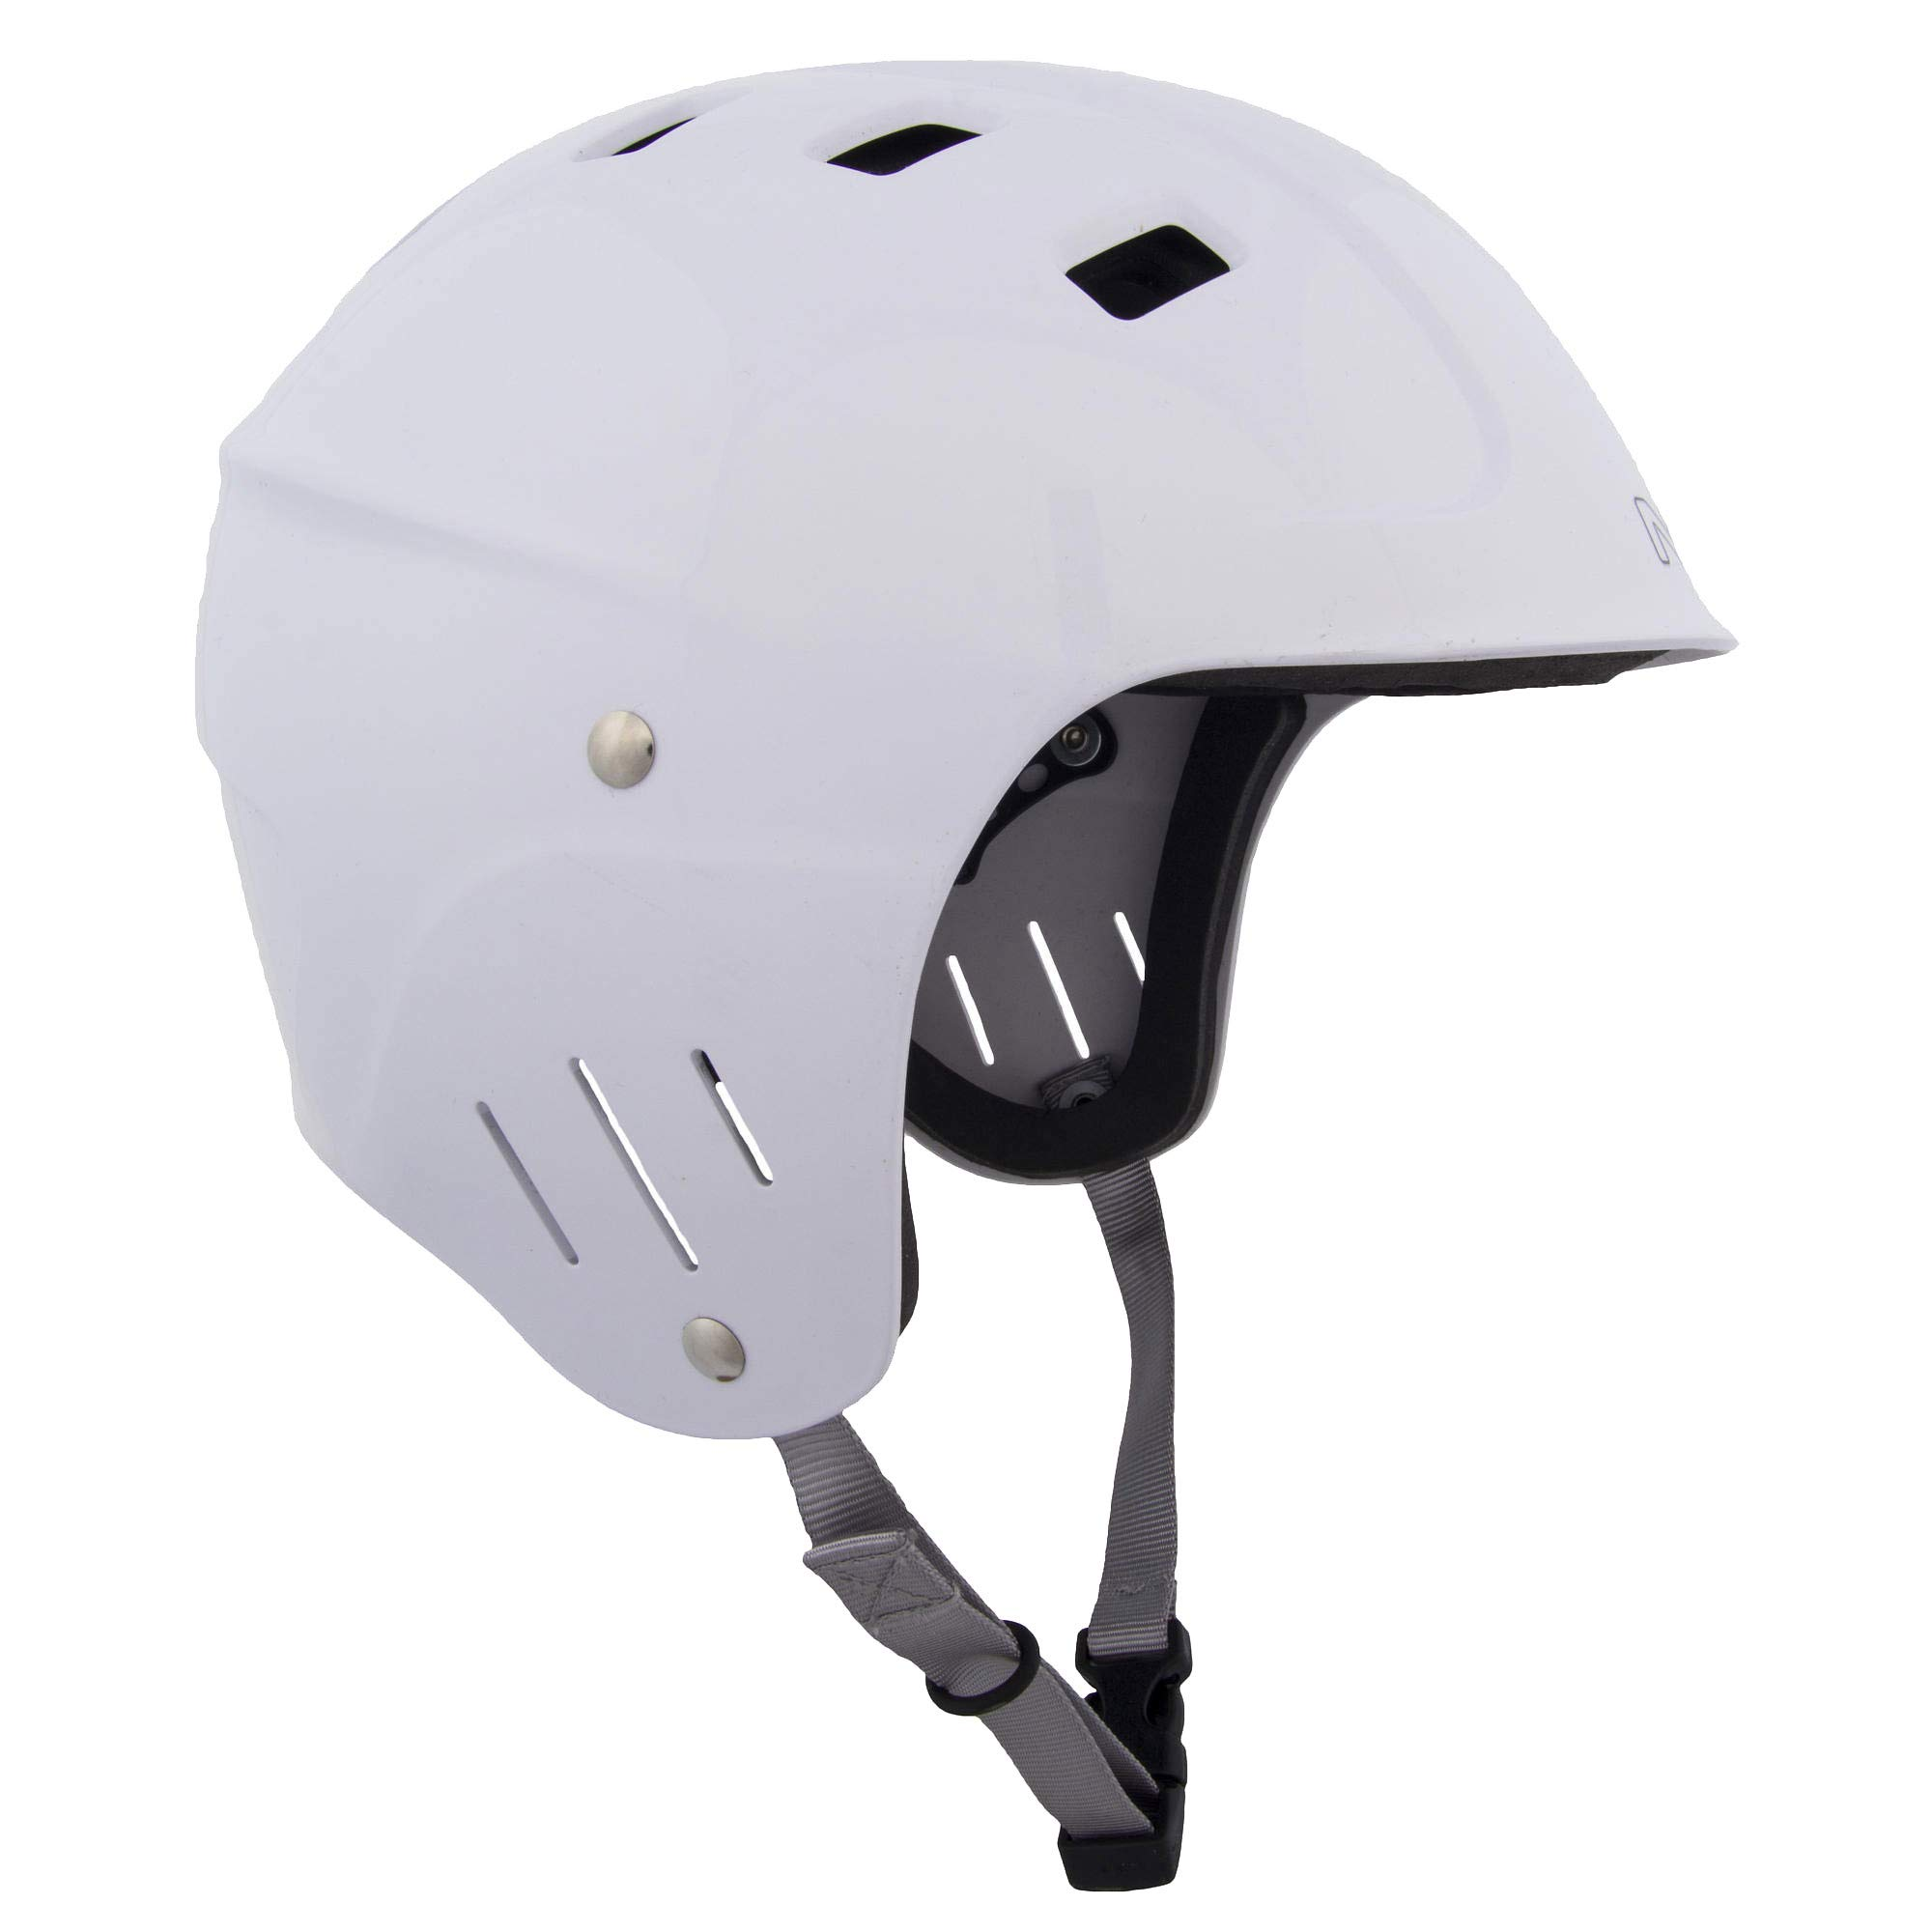 NRS Chaos Helmet - Full Cut White XS by NRS